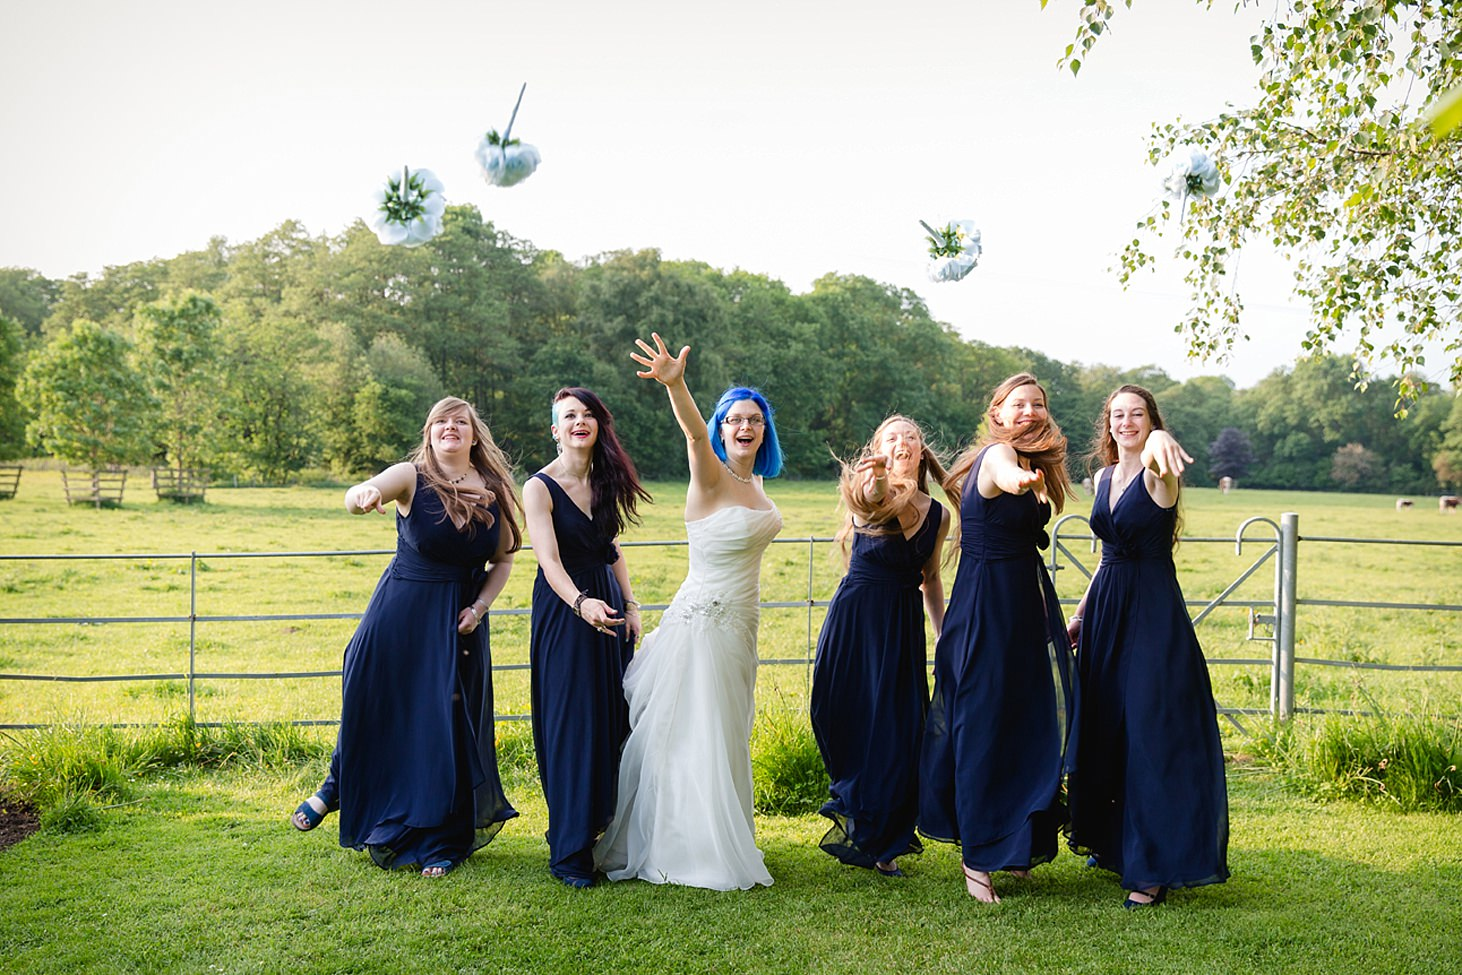 gate street barn wedding photography throwing bouquets